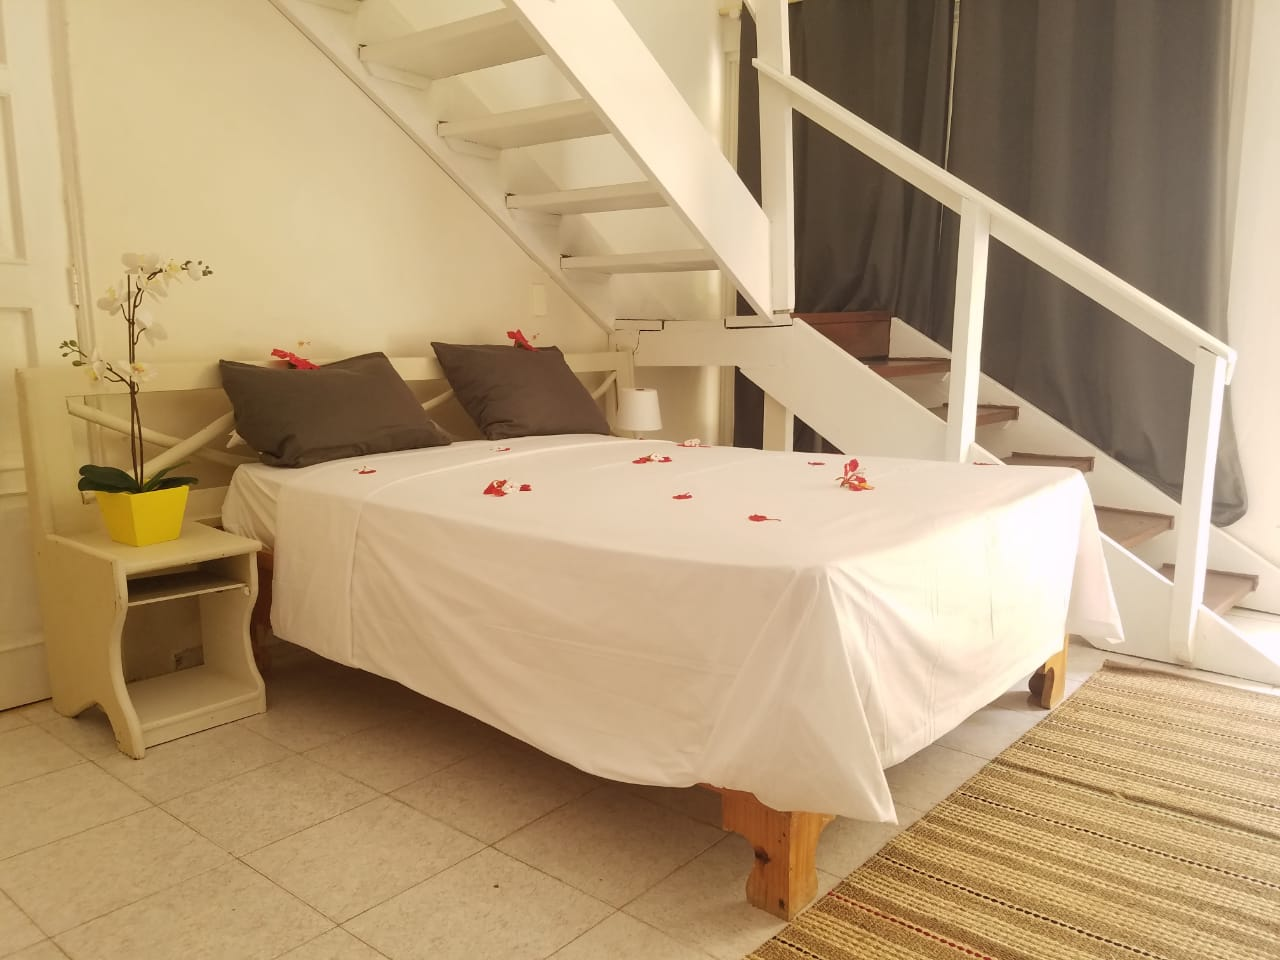 Standard double room with air conditioning and hot water